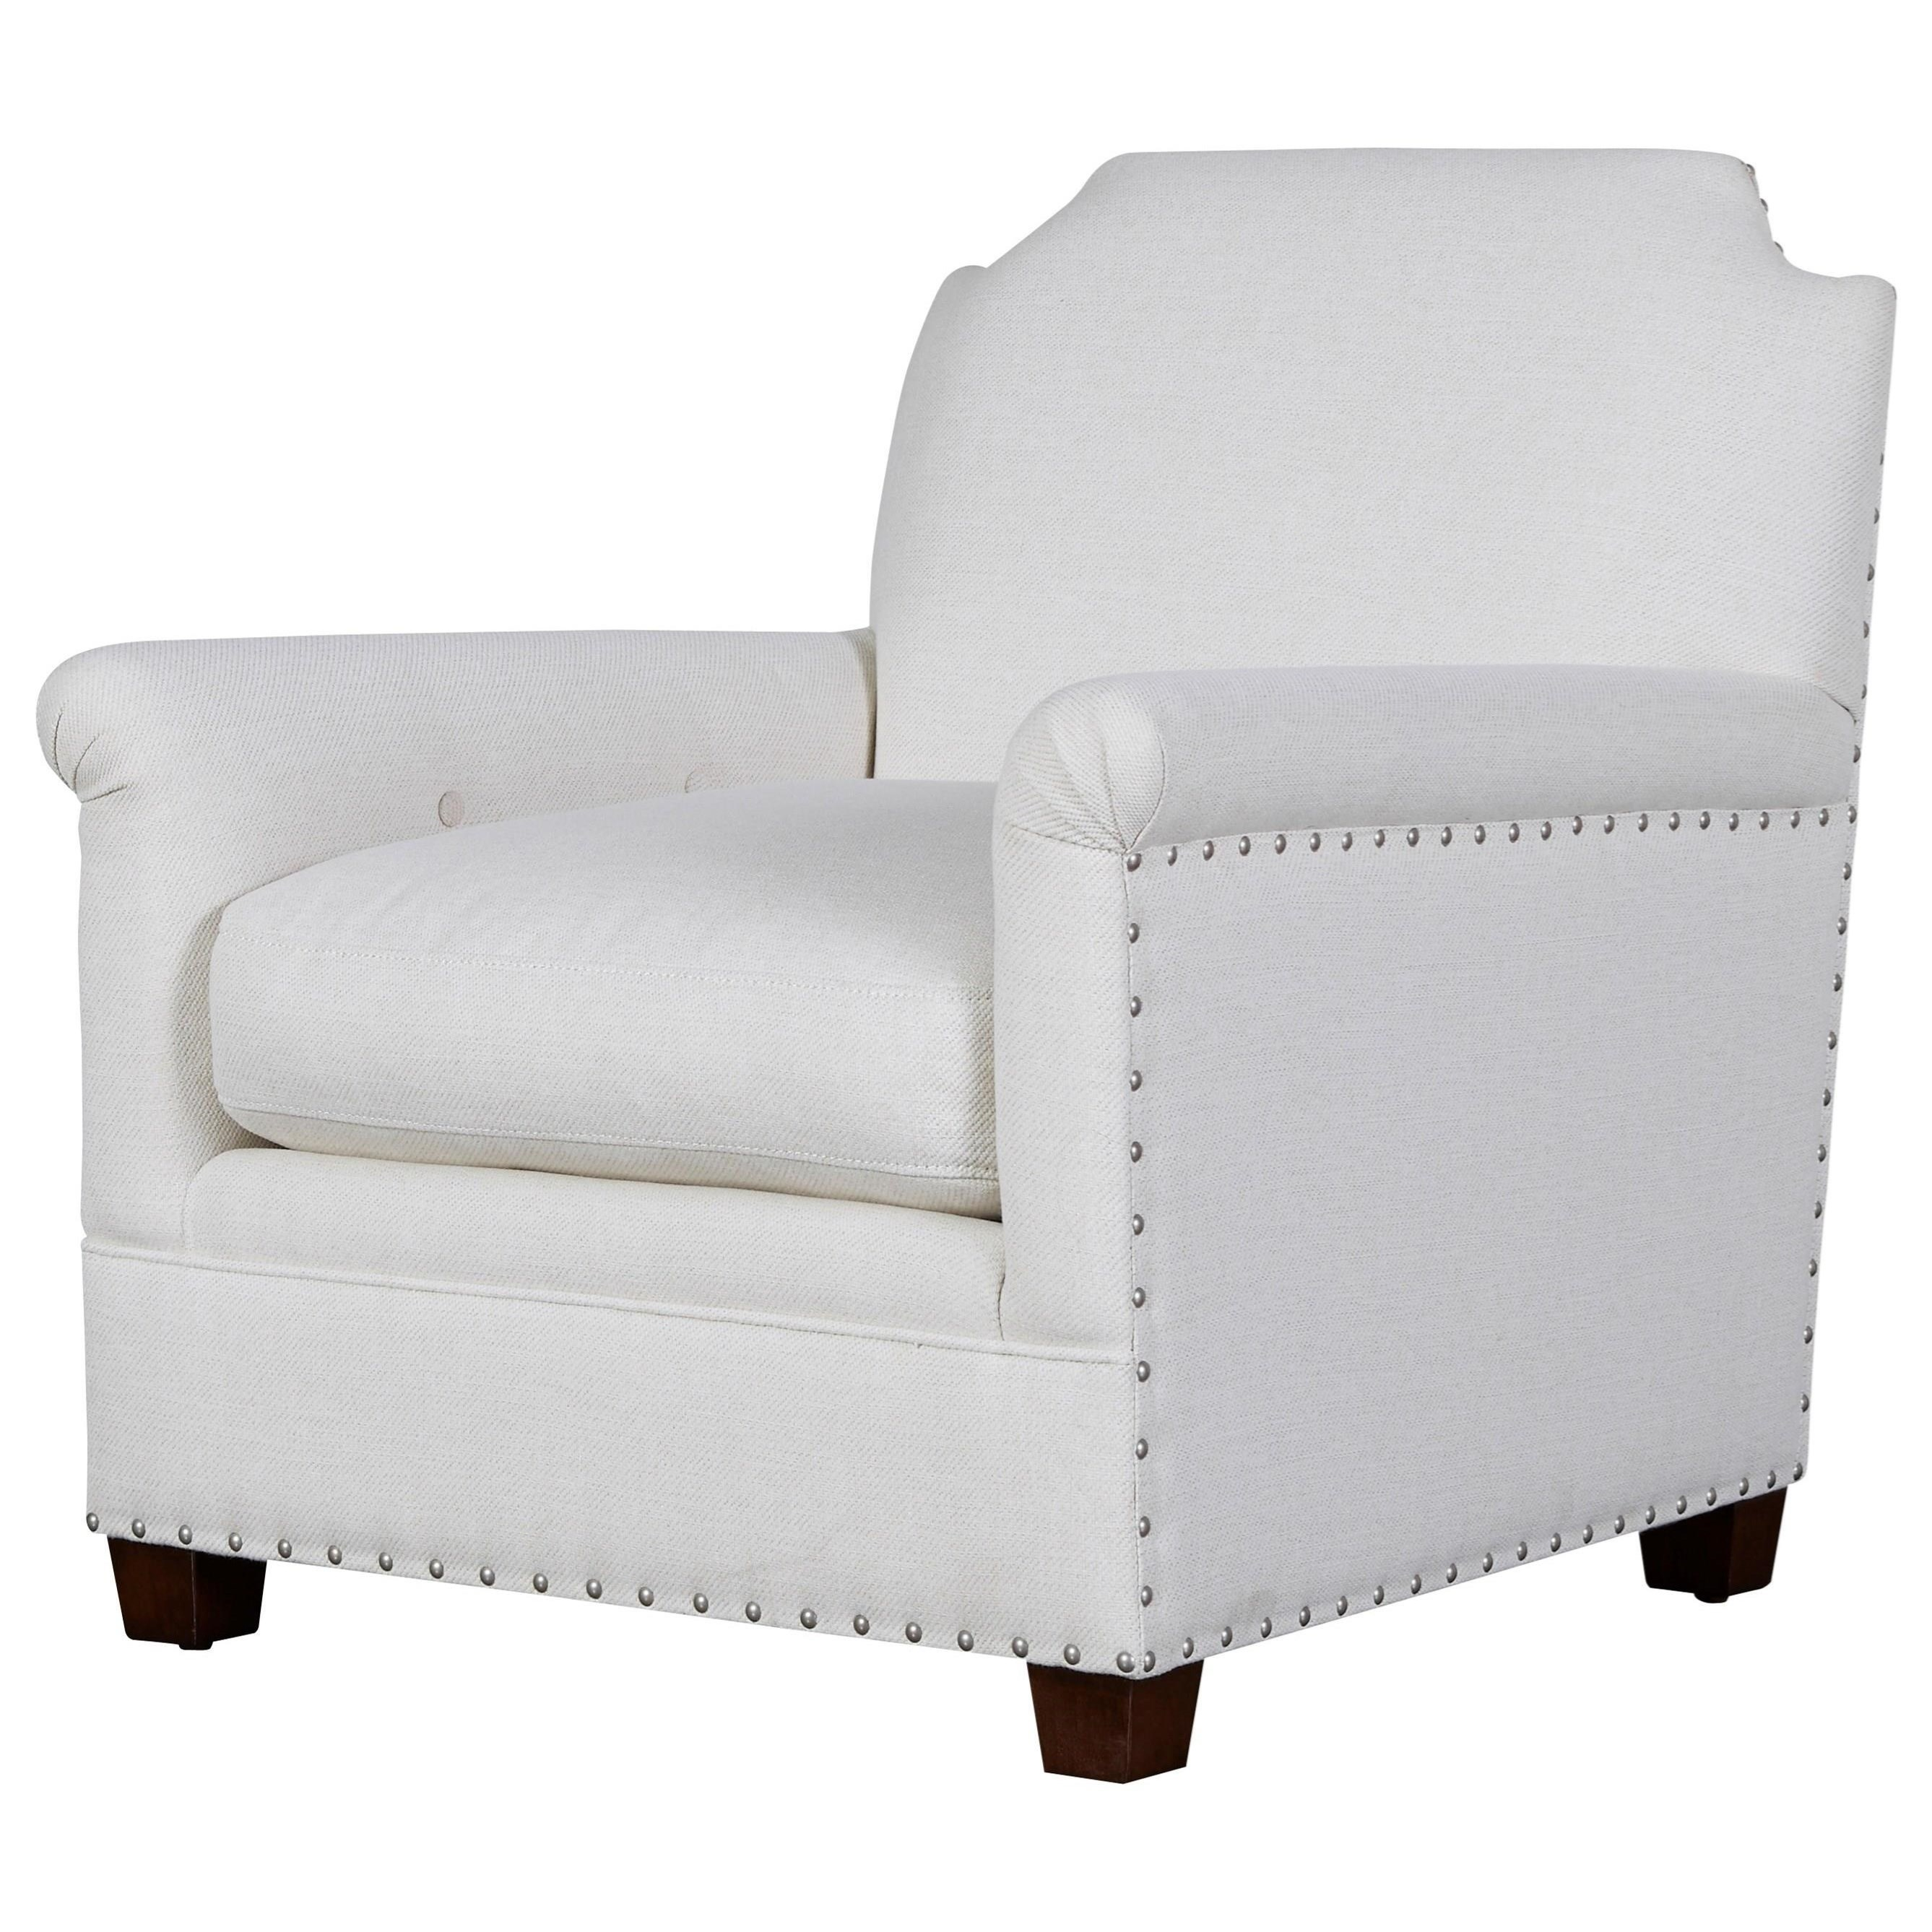 Oconnor Designs Tessa Accent Chair In Performance Fabric